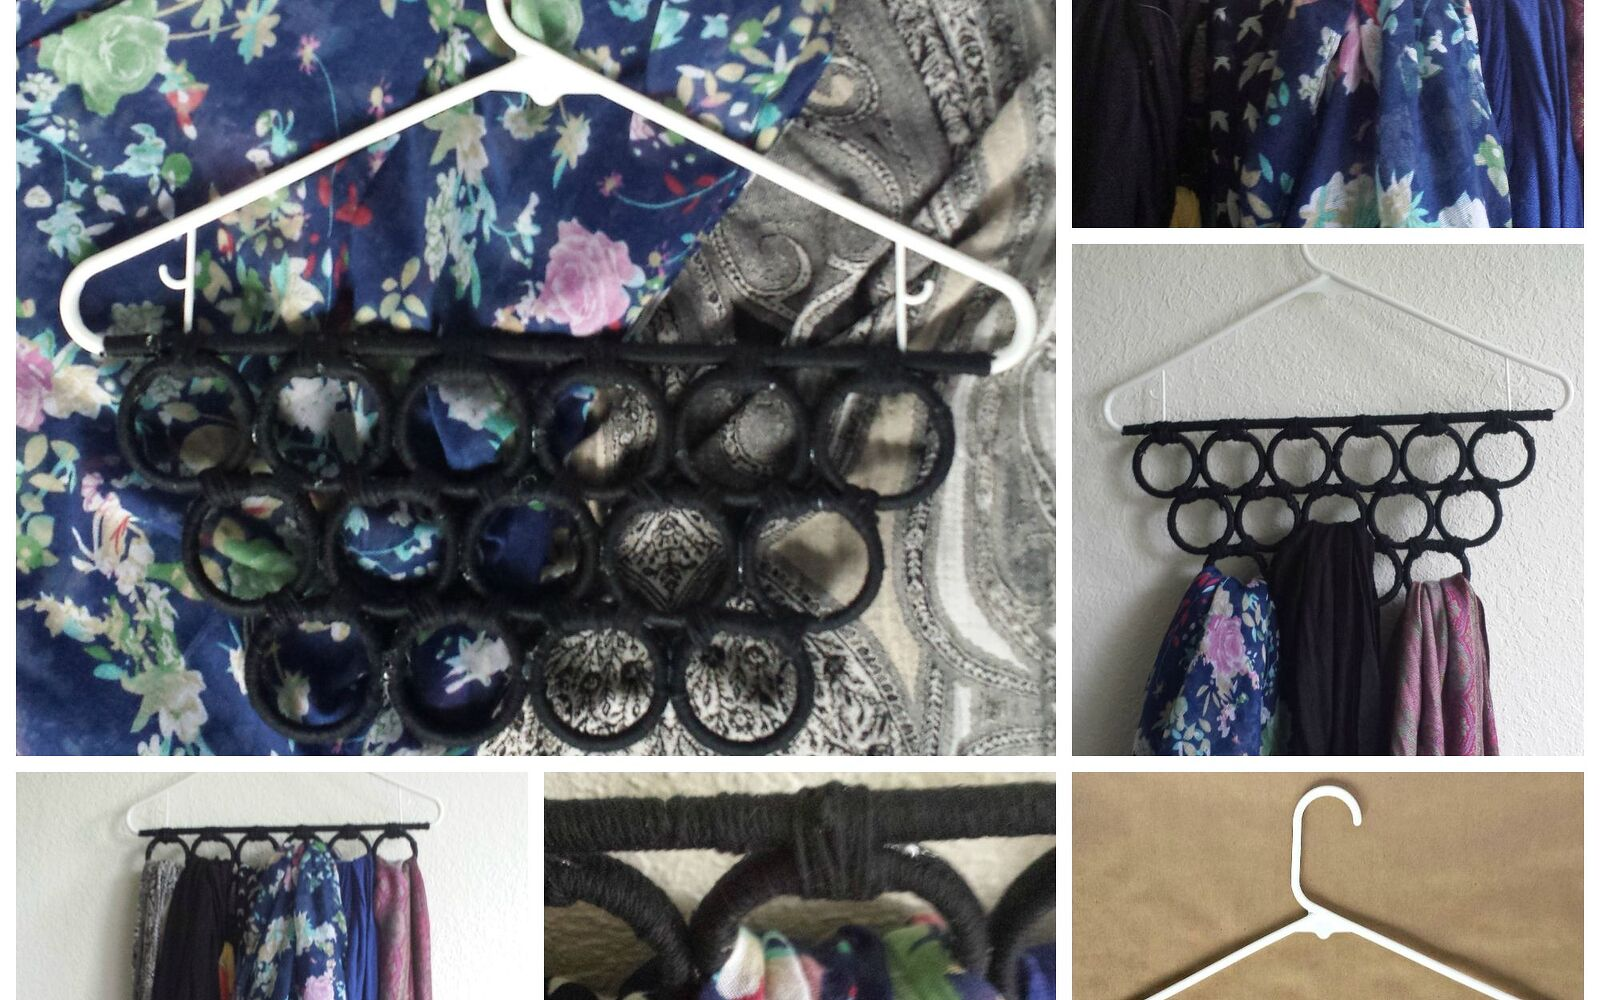 s 30 fun ways to keep your home organized, Use A Hanger For Your Scarves With Rings